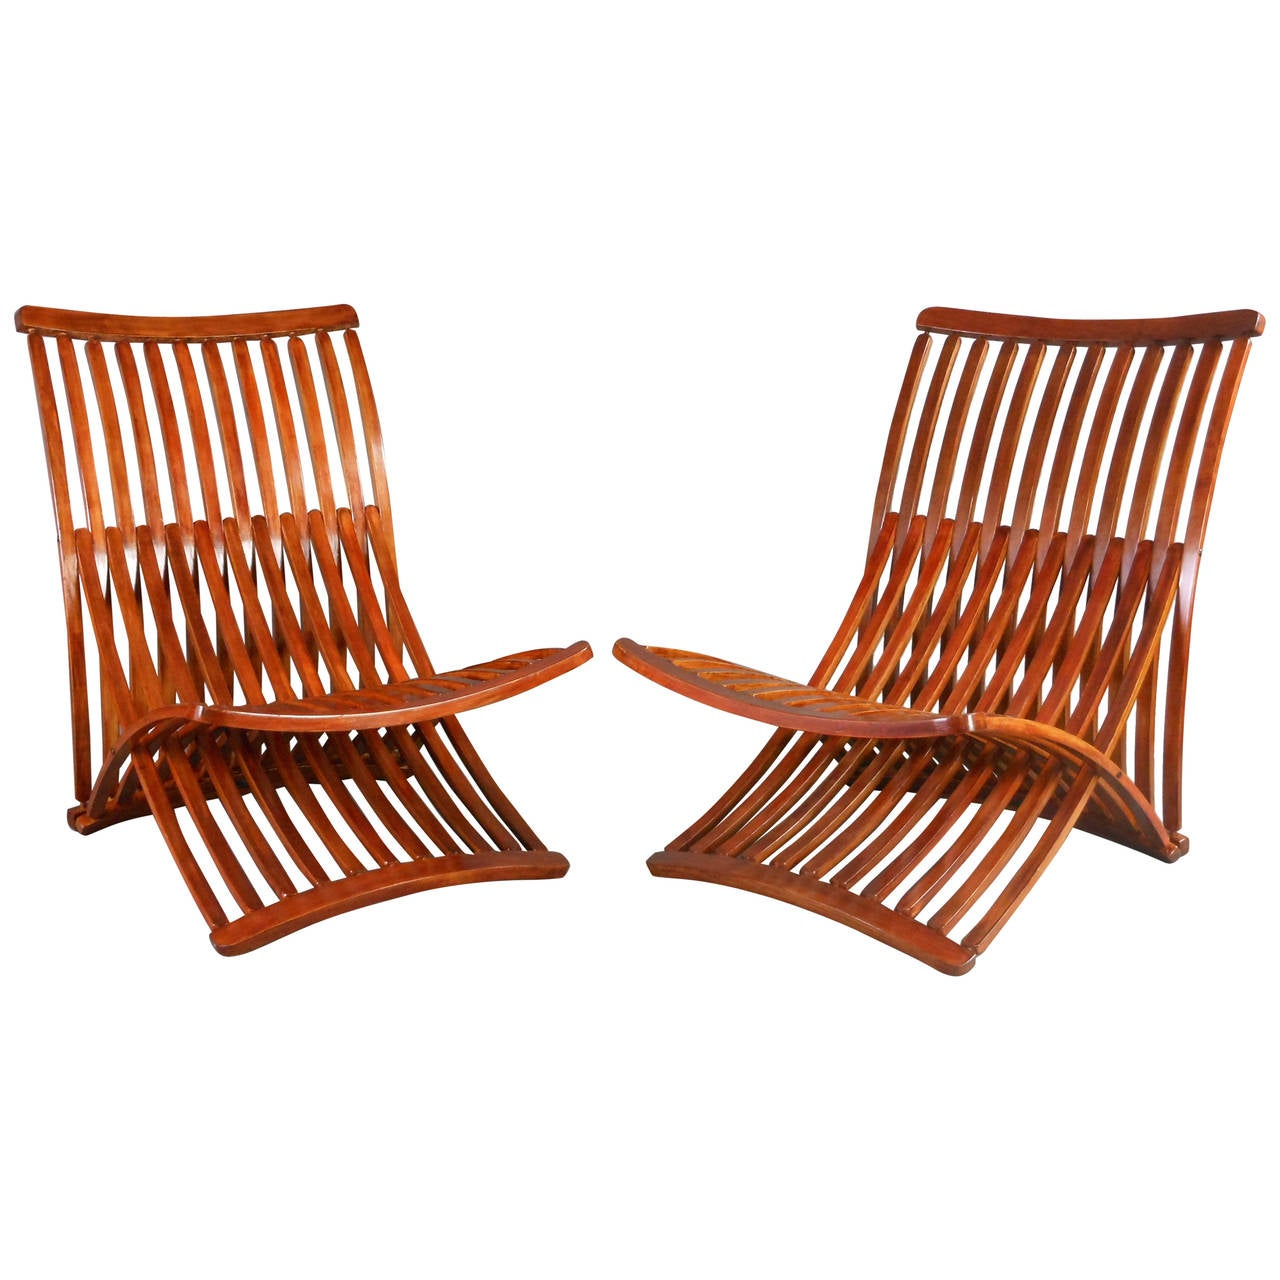 canadian birch steamer chairs by thomas lamb circa 1